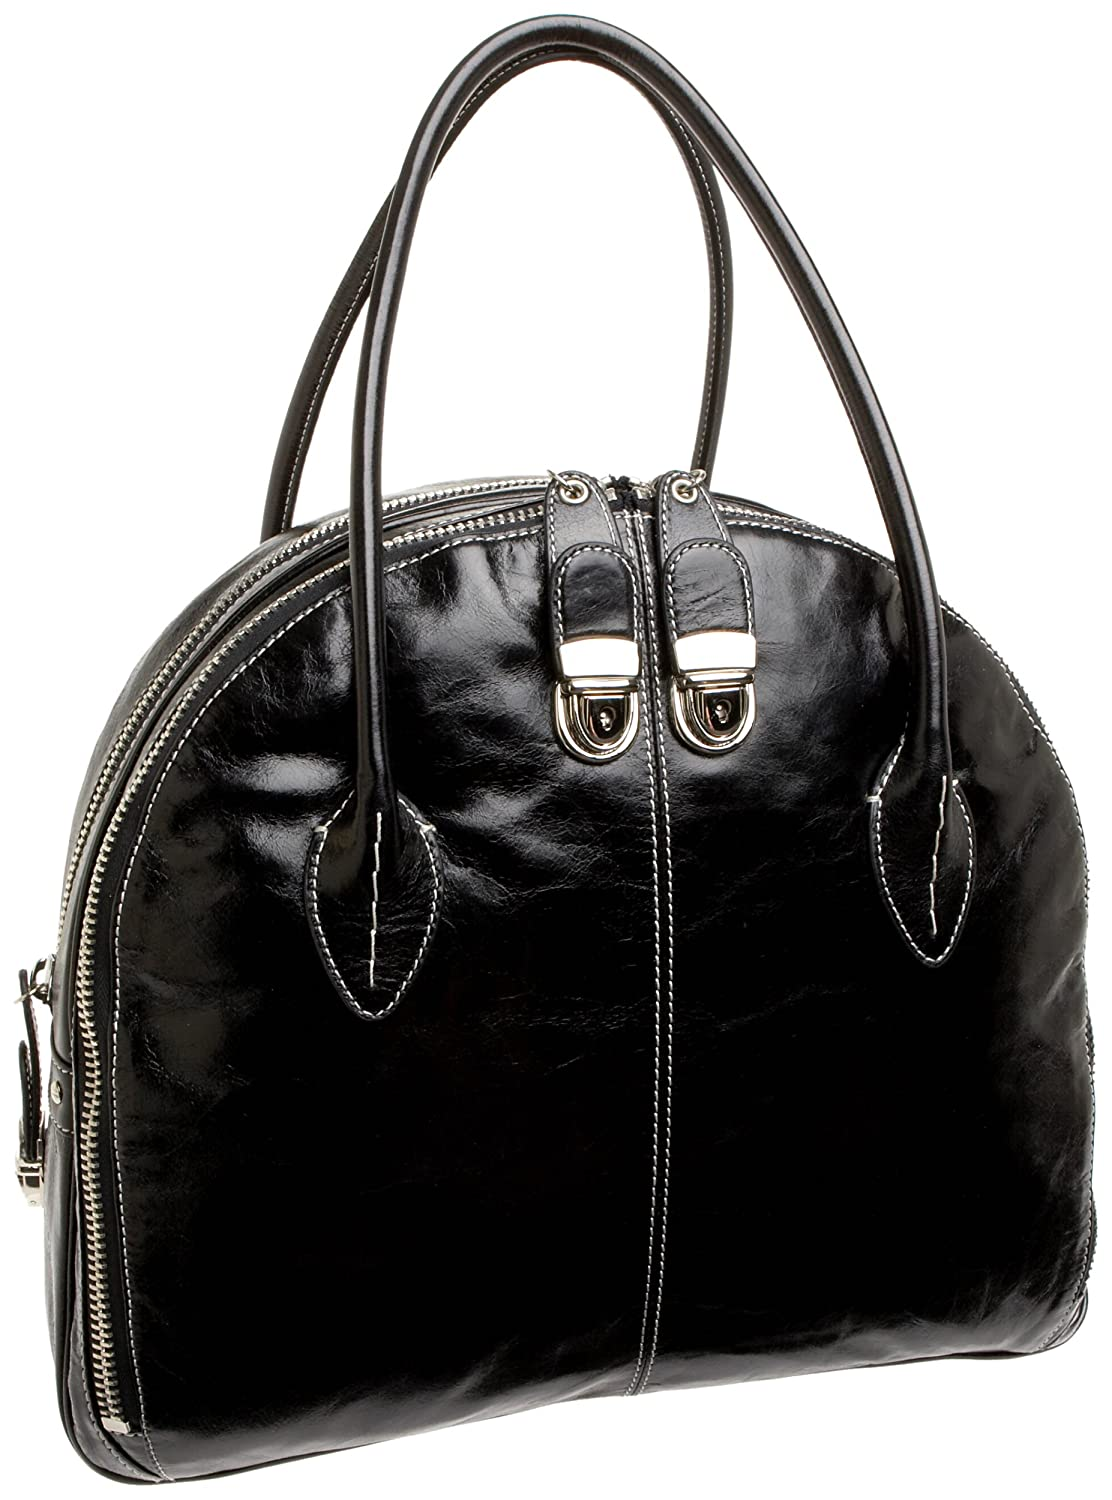 Cynthia Rowley Ginny Athene Bowler - Free Overnight Shipping & Return Shipping: Endless.com :  handles lined bag lock